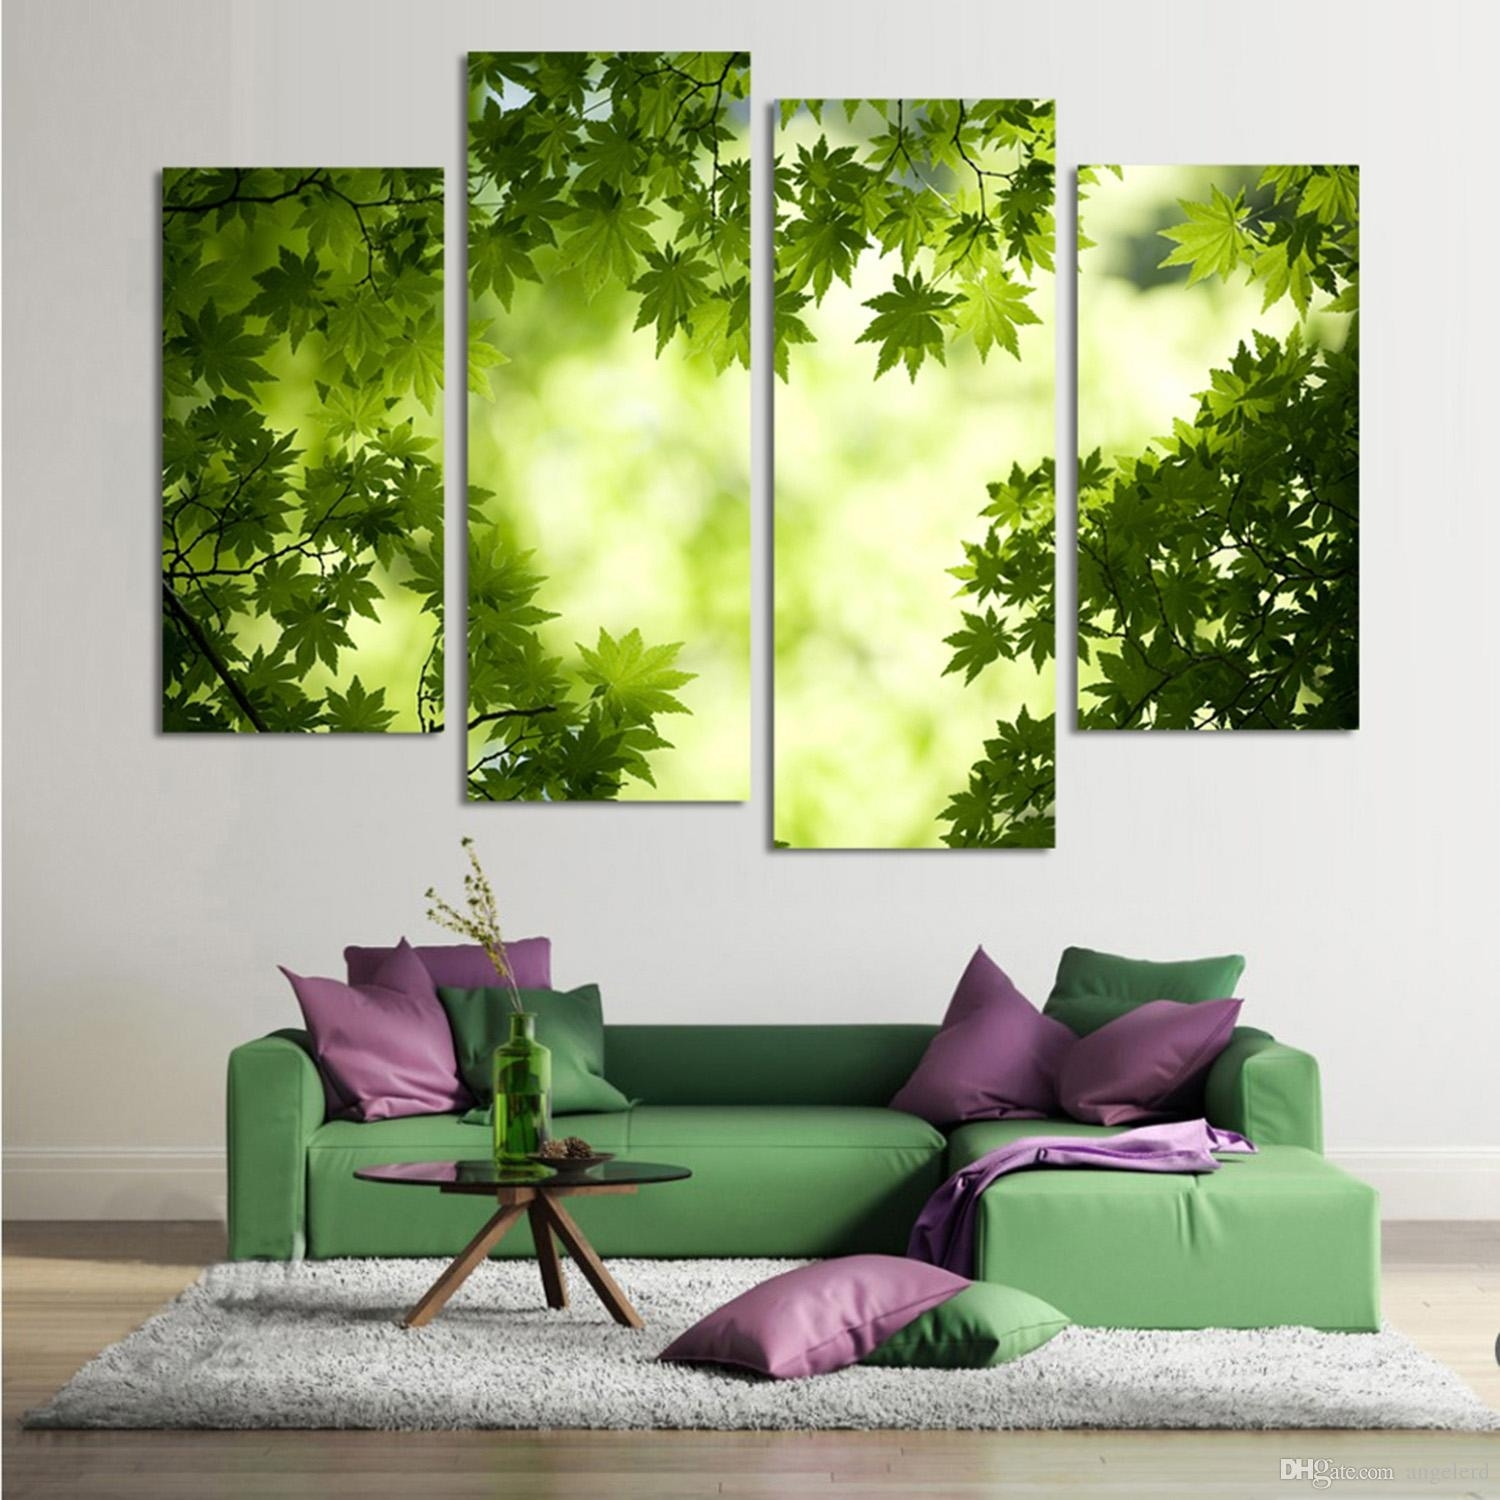 4 Panel Abstract Printed Stil Life Green Leaf Painting Canvas Art Throughout 2018 Abstract Leaves Wall Art (View 3 of 20)